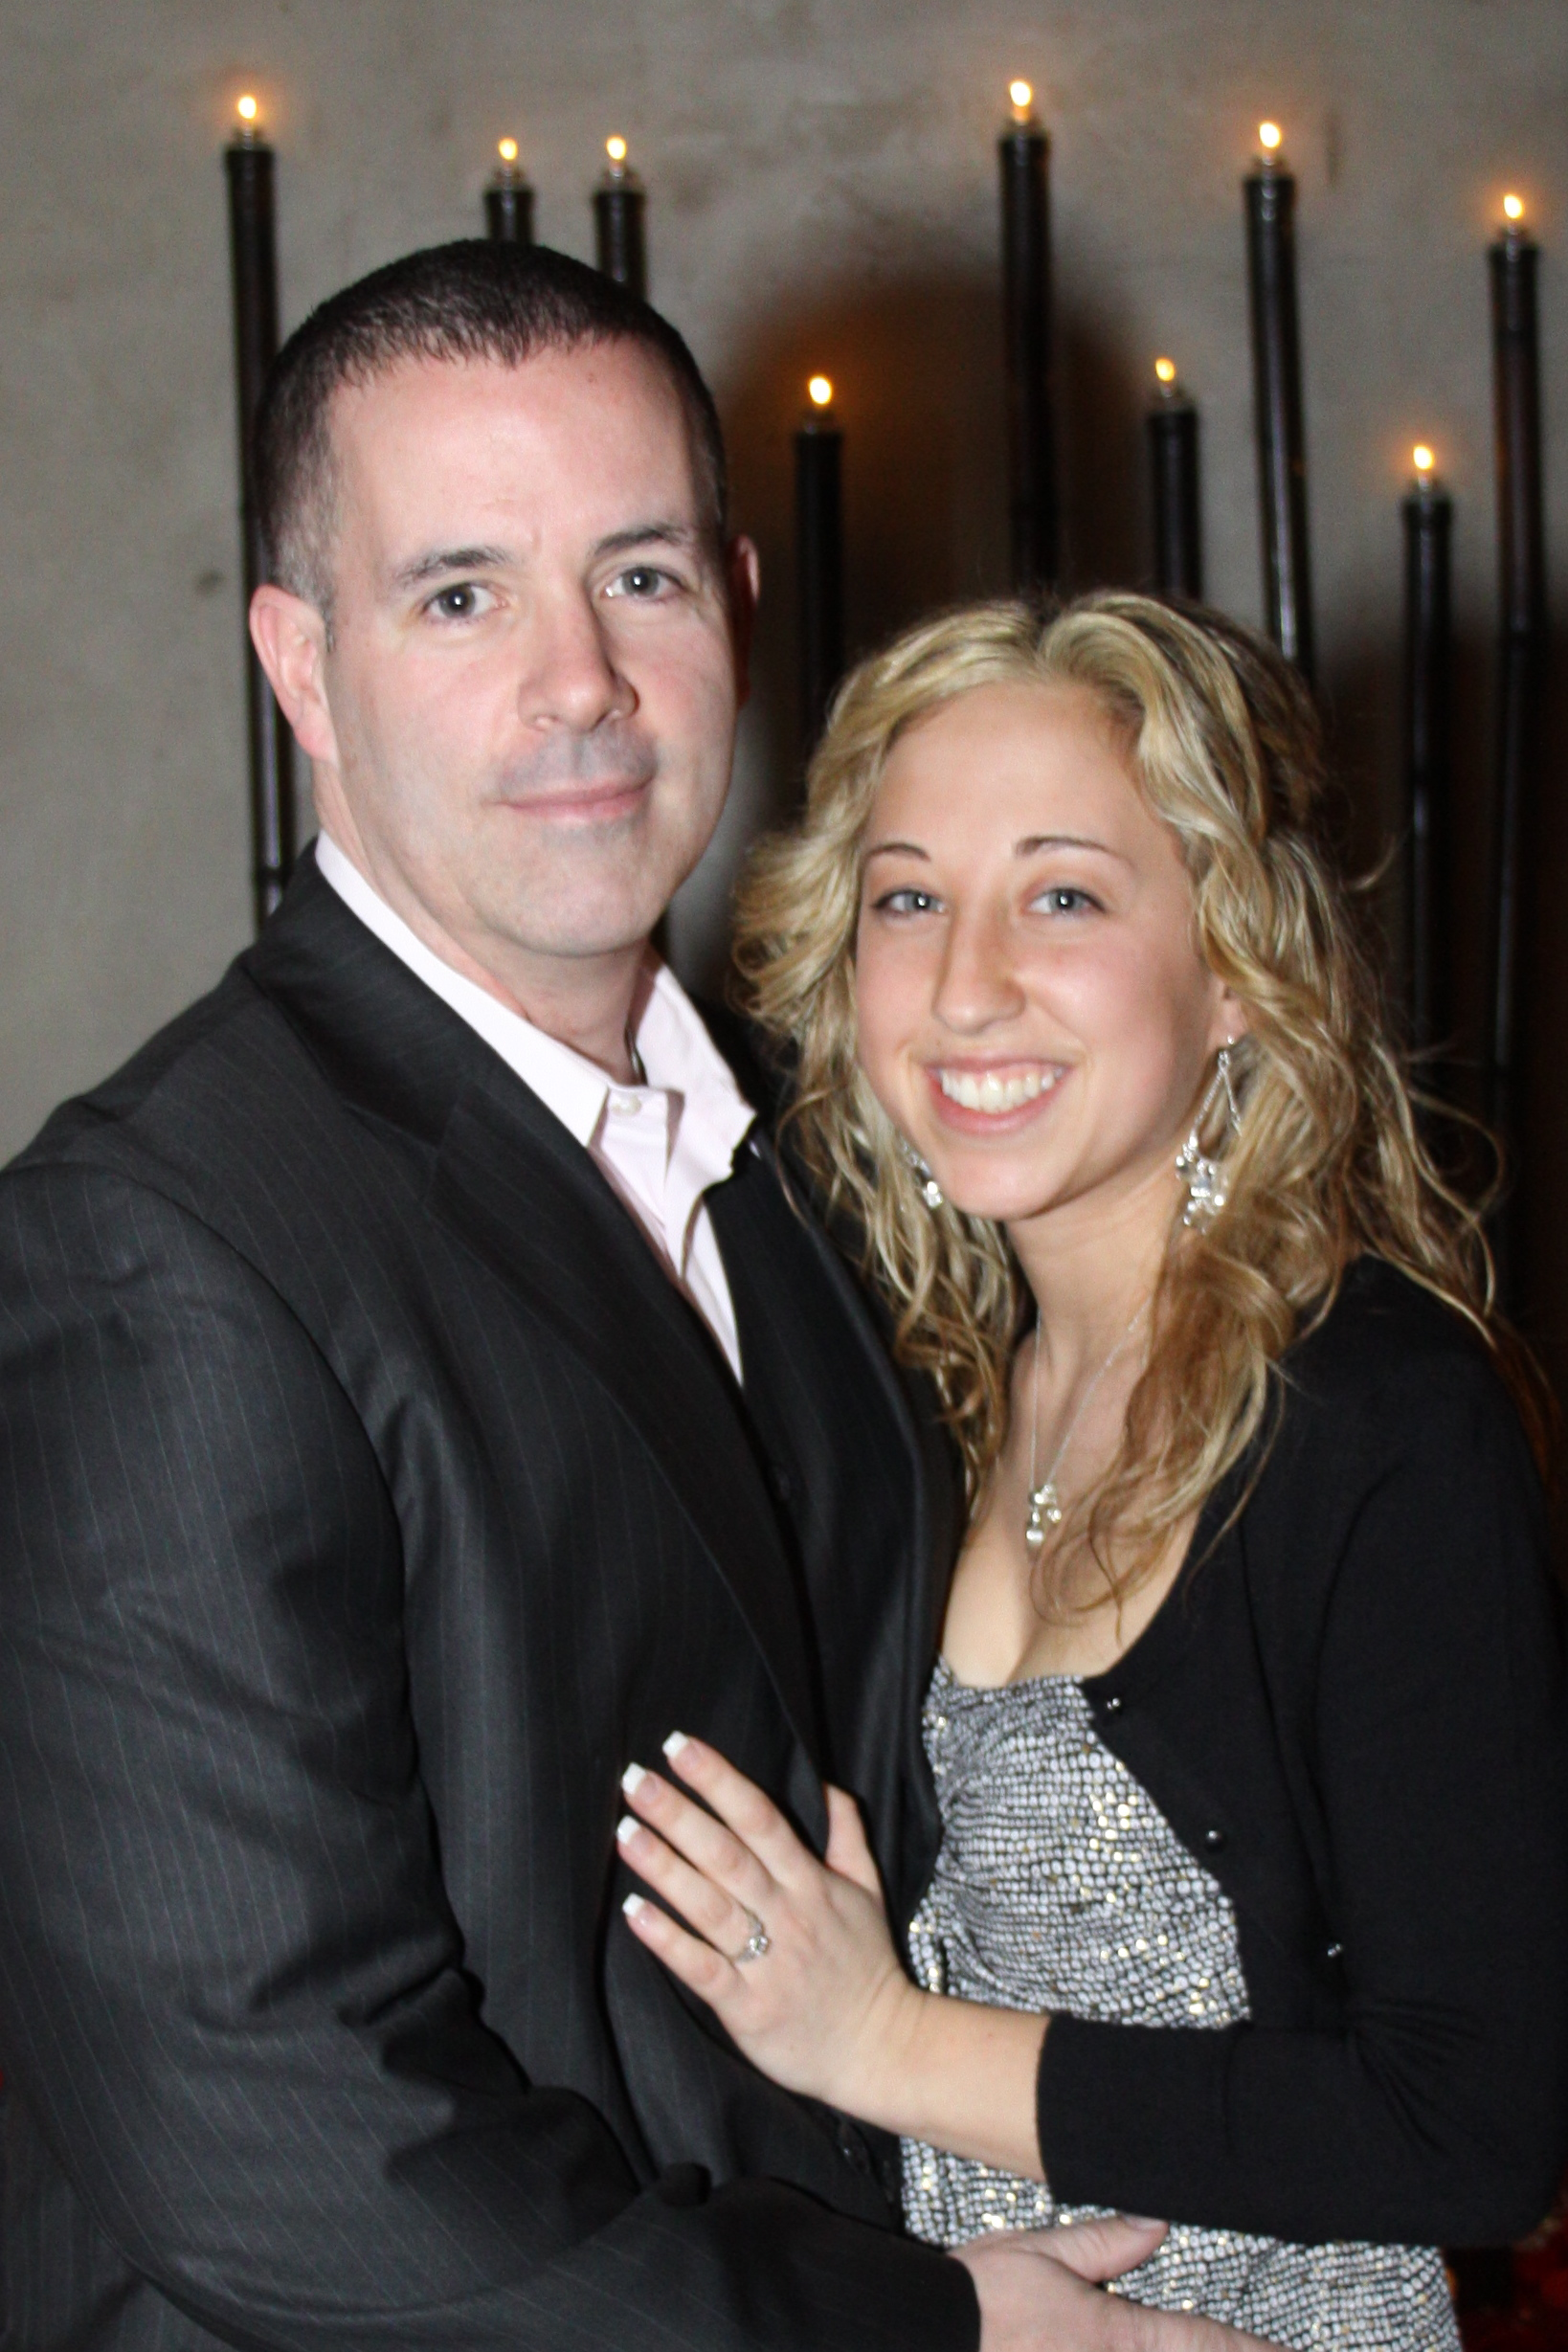 Getting engaged in Las Vegas - Congratulations Heather & Bill.